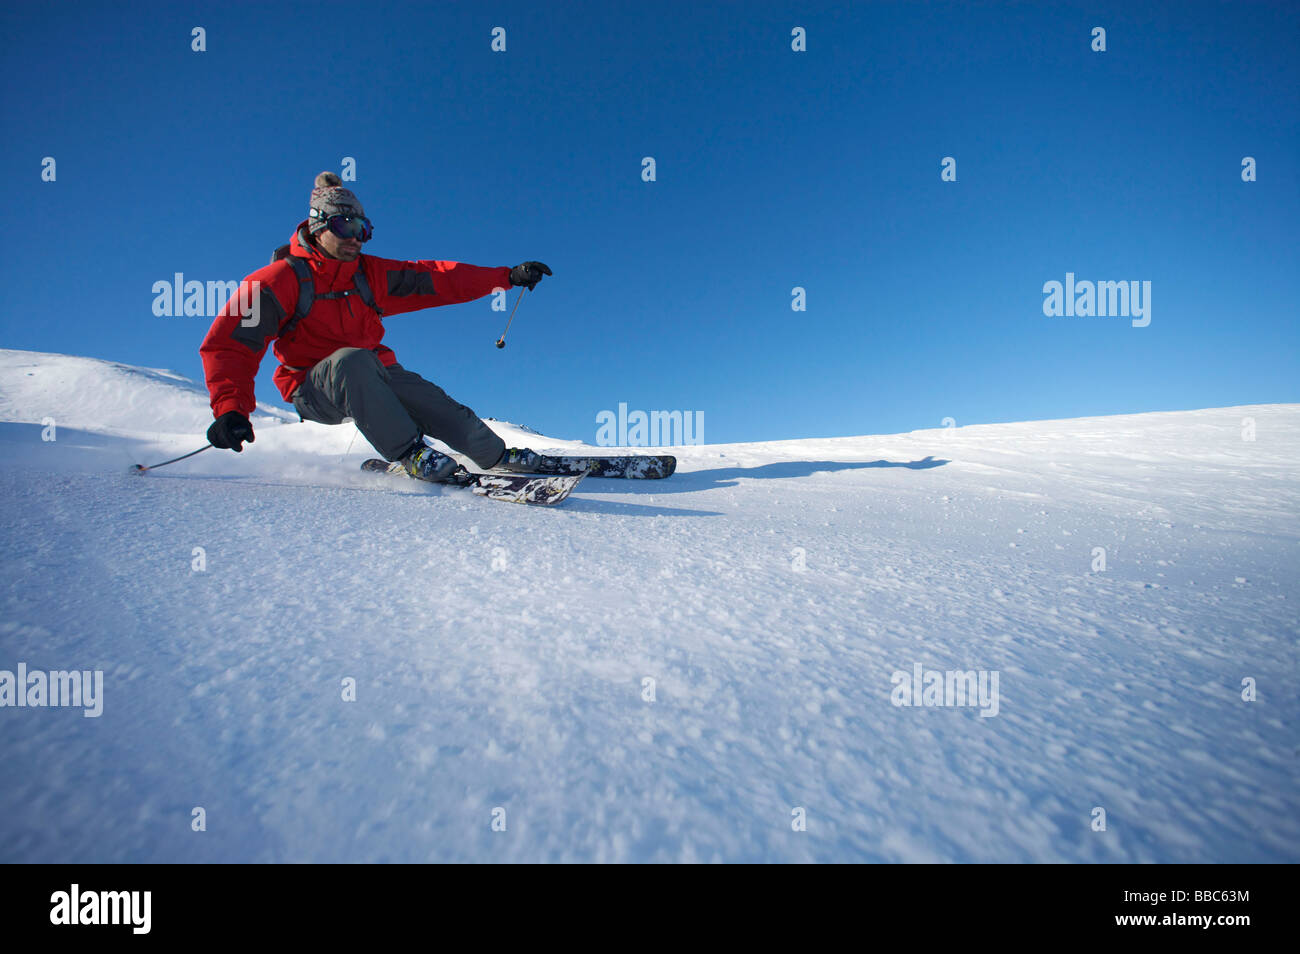 Skier turning on piste. - Stock Image